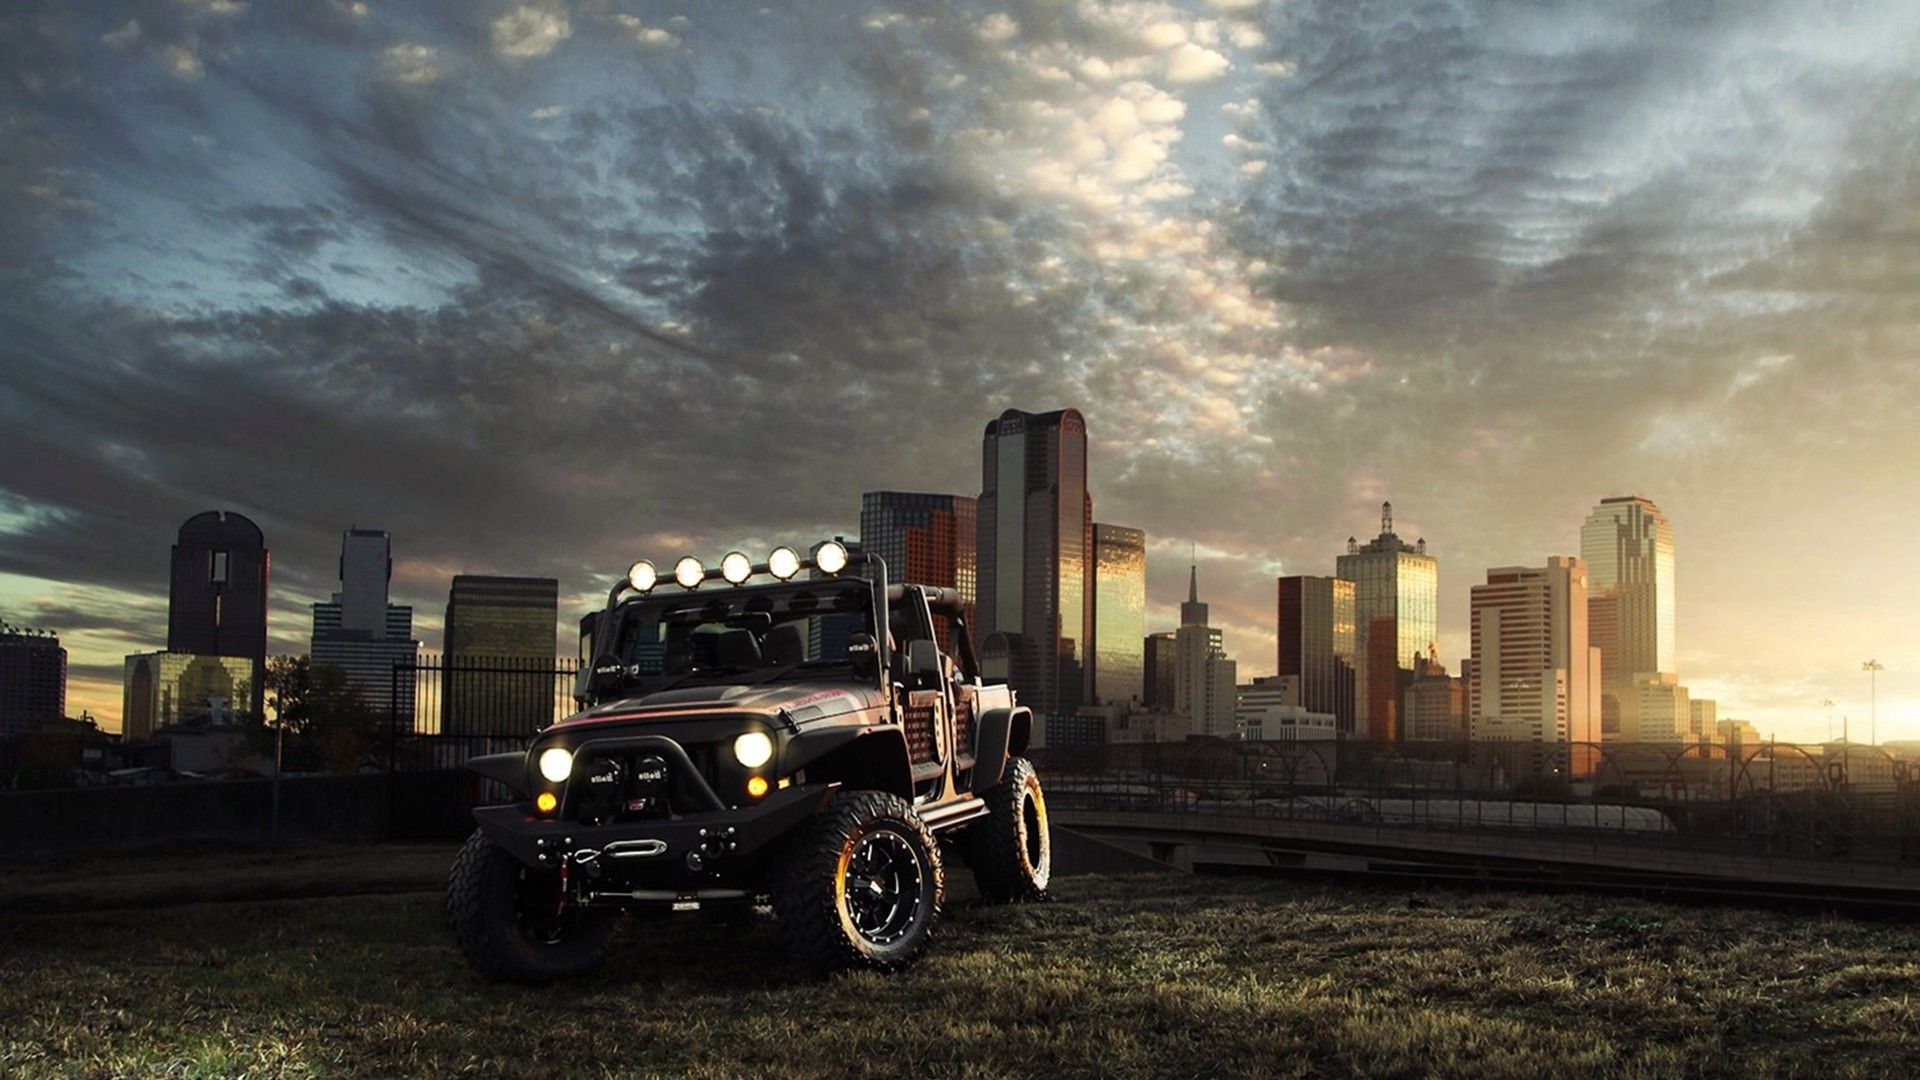 Jeep Wrangler Wallpapers Wallpaper 1920 1080 Jeep Wallpapers 49